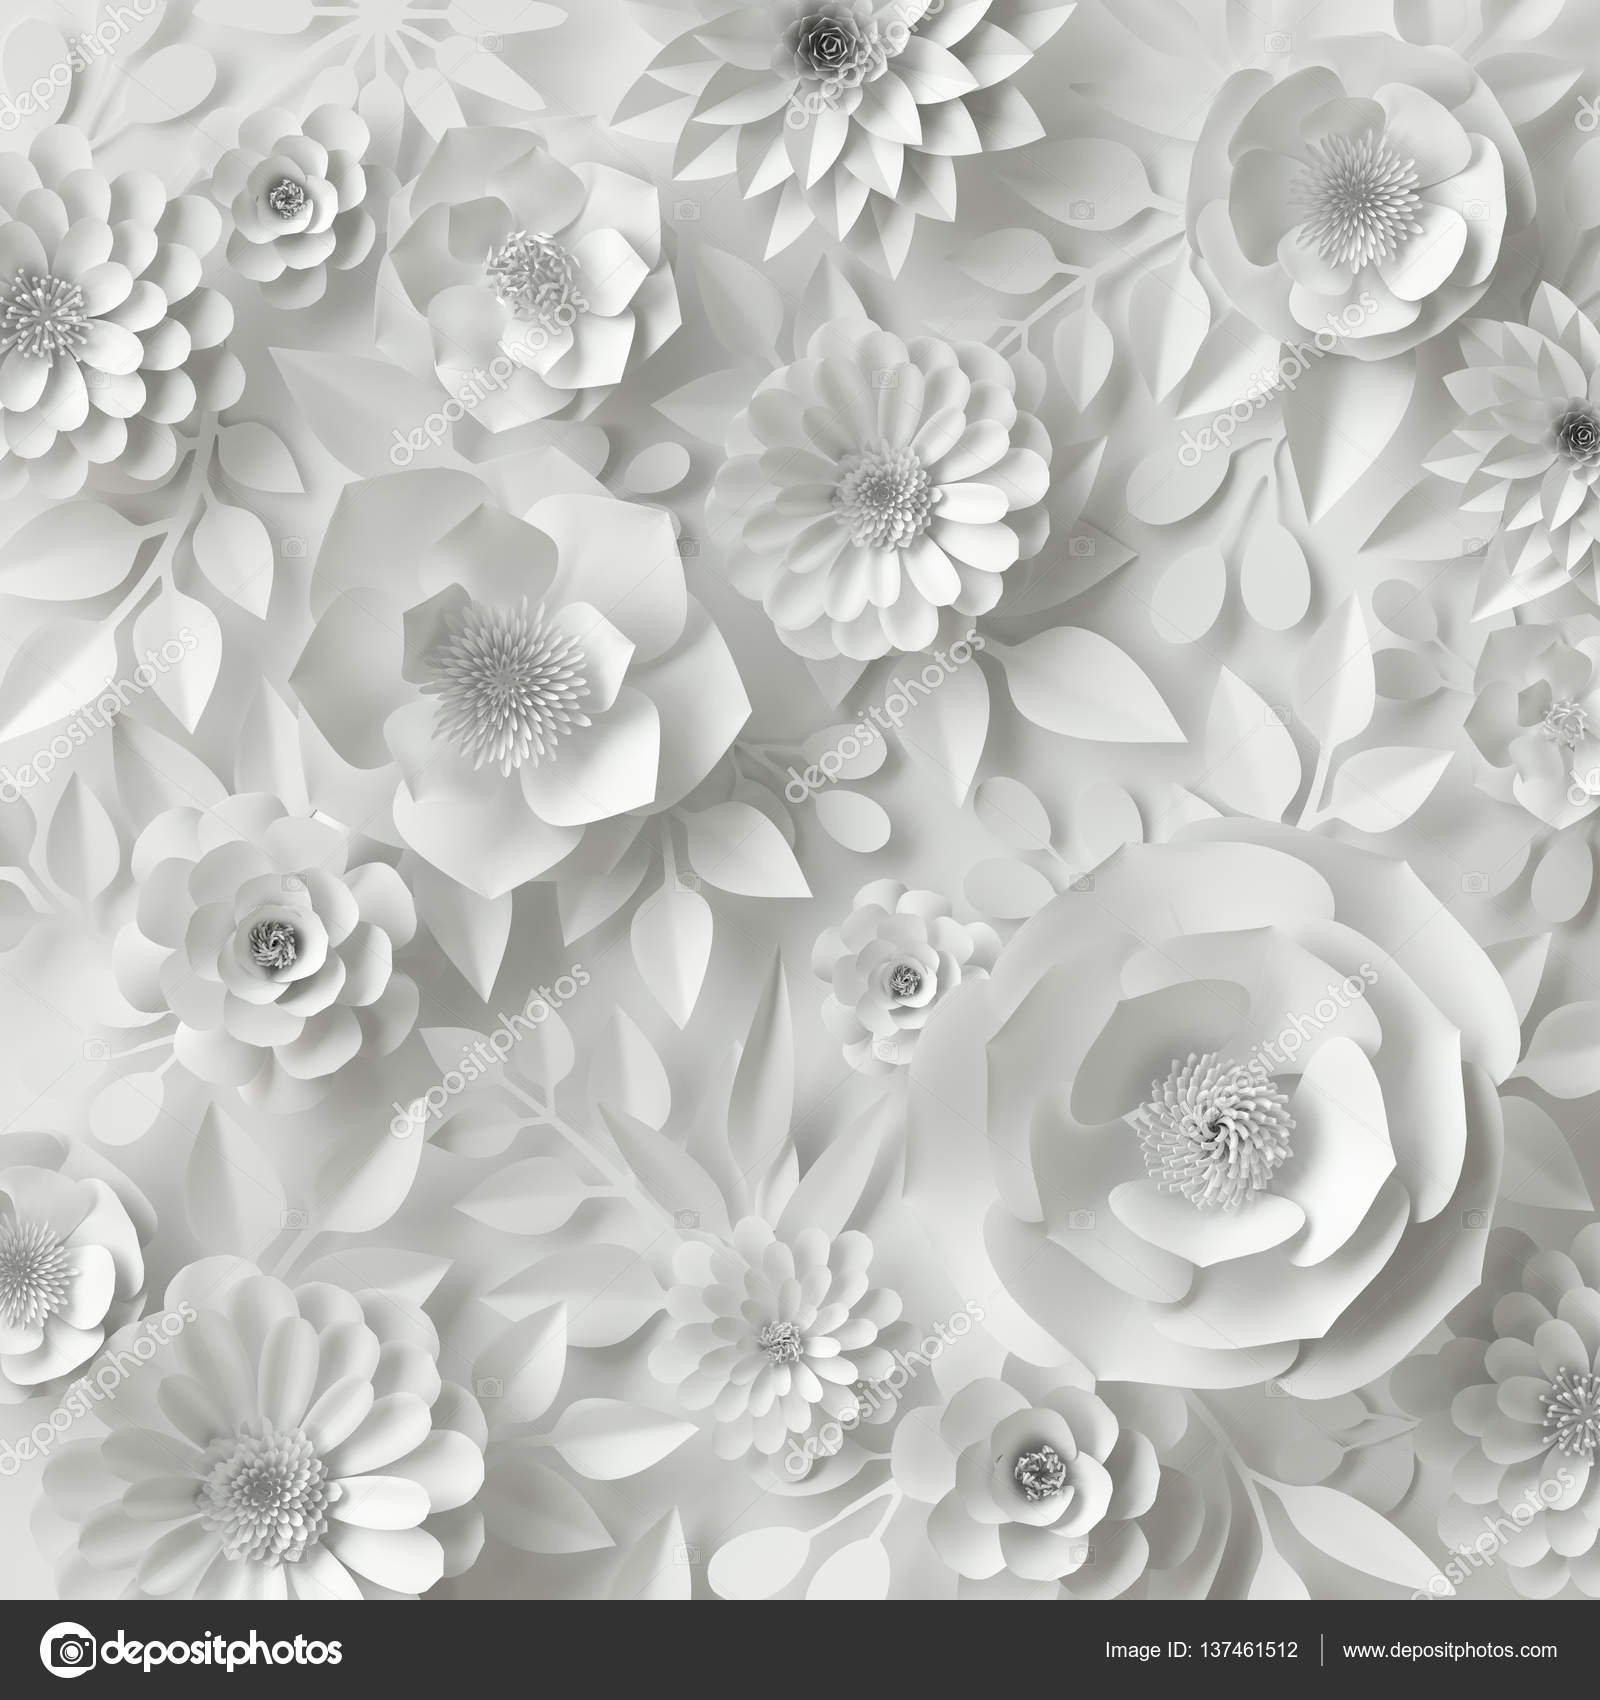 3d render digital illustration white paper flowers floral 3d render digital illustration white paper flowers floral background bridal bouquet wedding card quilling greeting card template photo by wacomka mightylinksfo